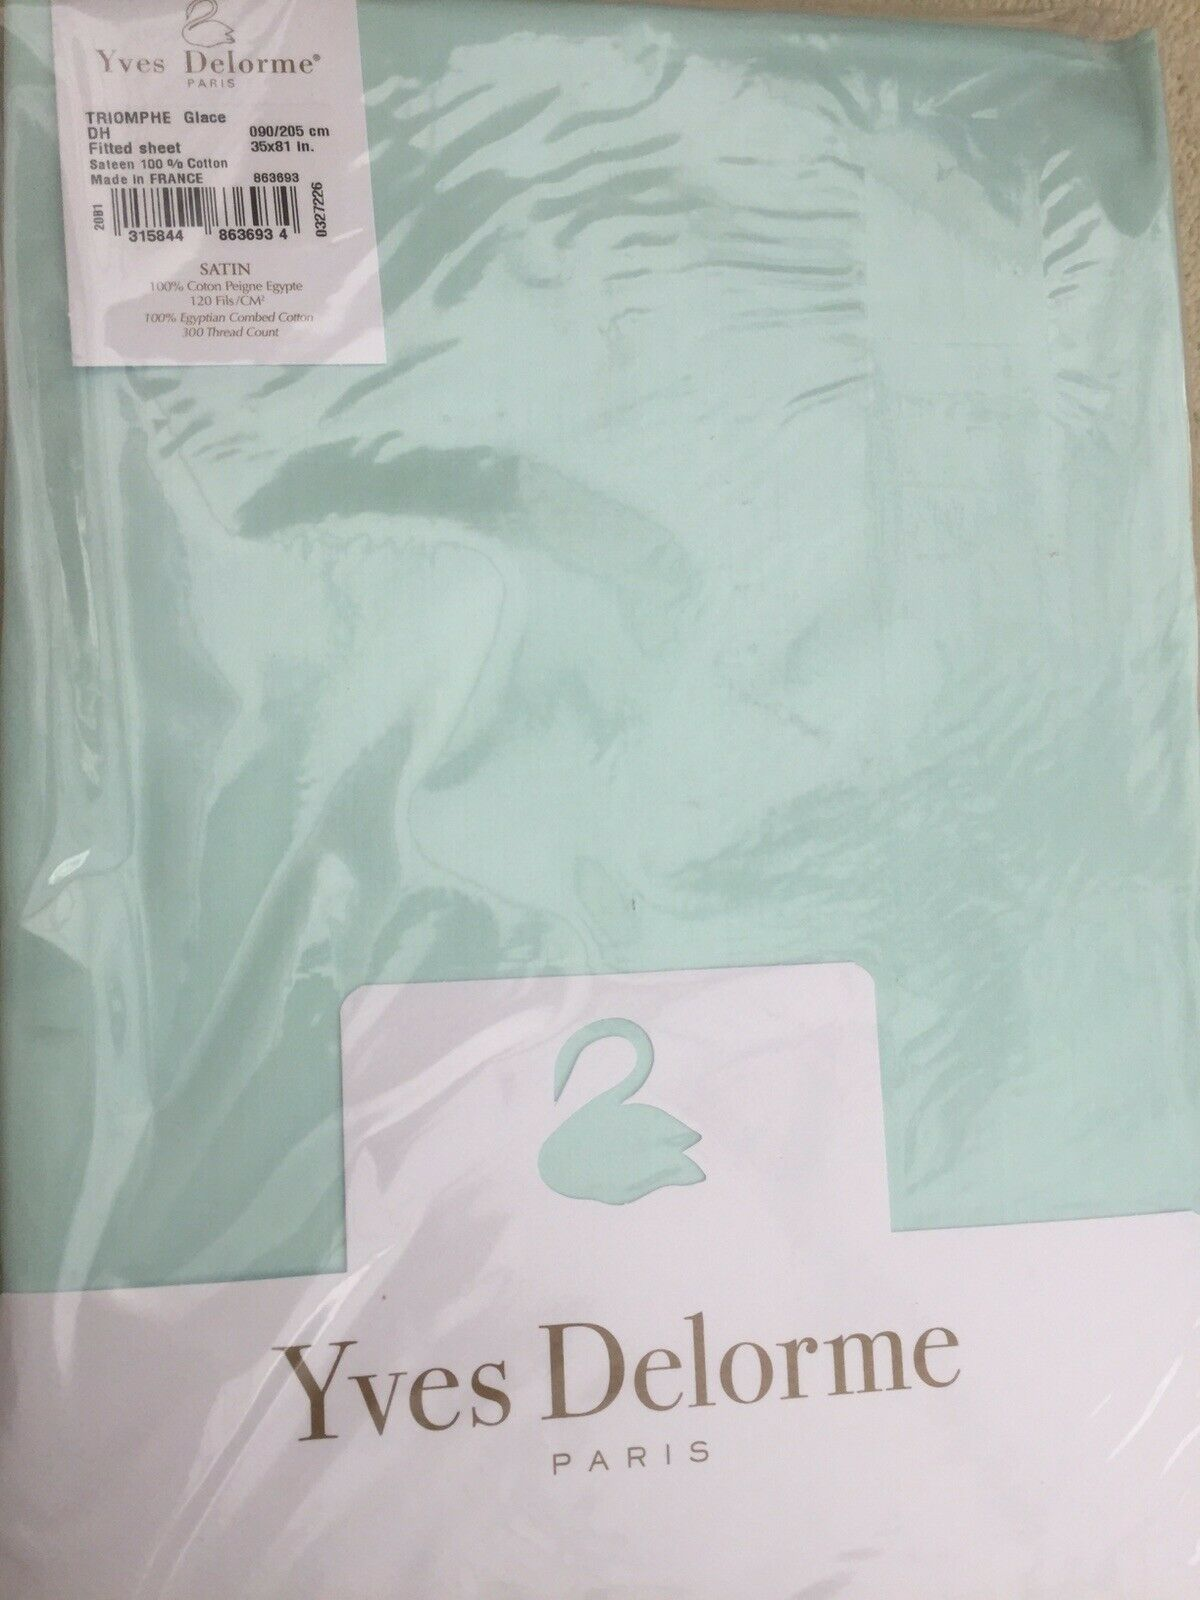 YVES DELORME TRIOMPHE GLACE SATIN FITTED SHEET  LUXURY 90 205 CMS